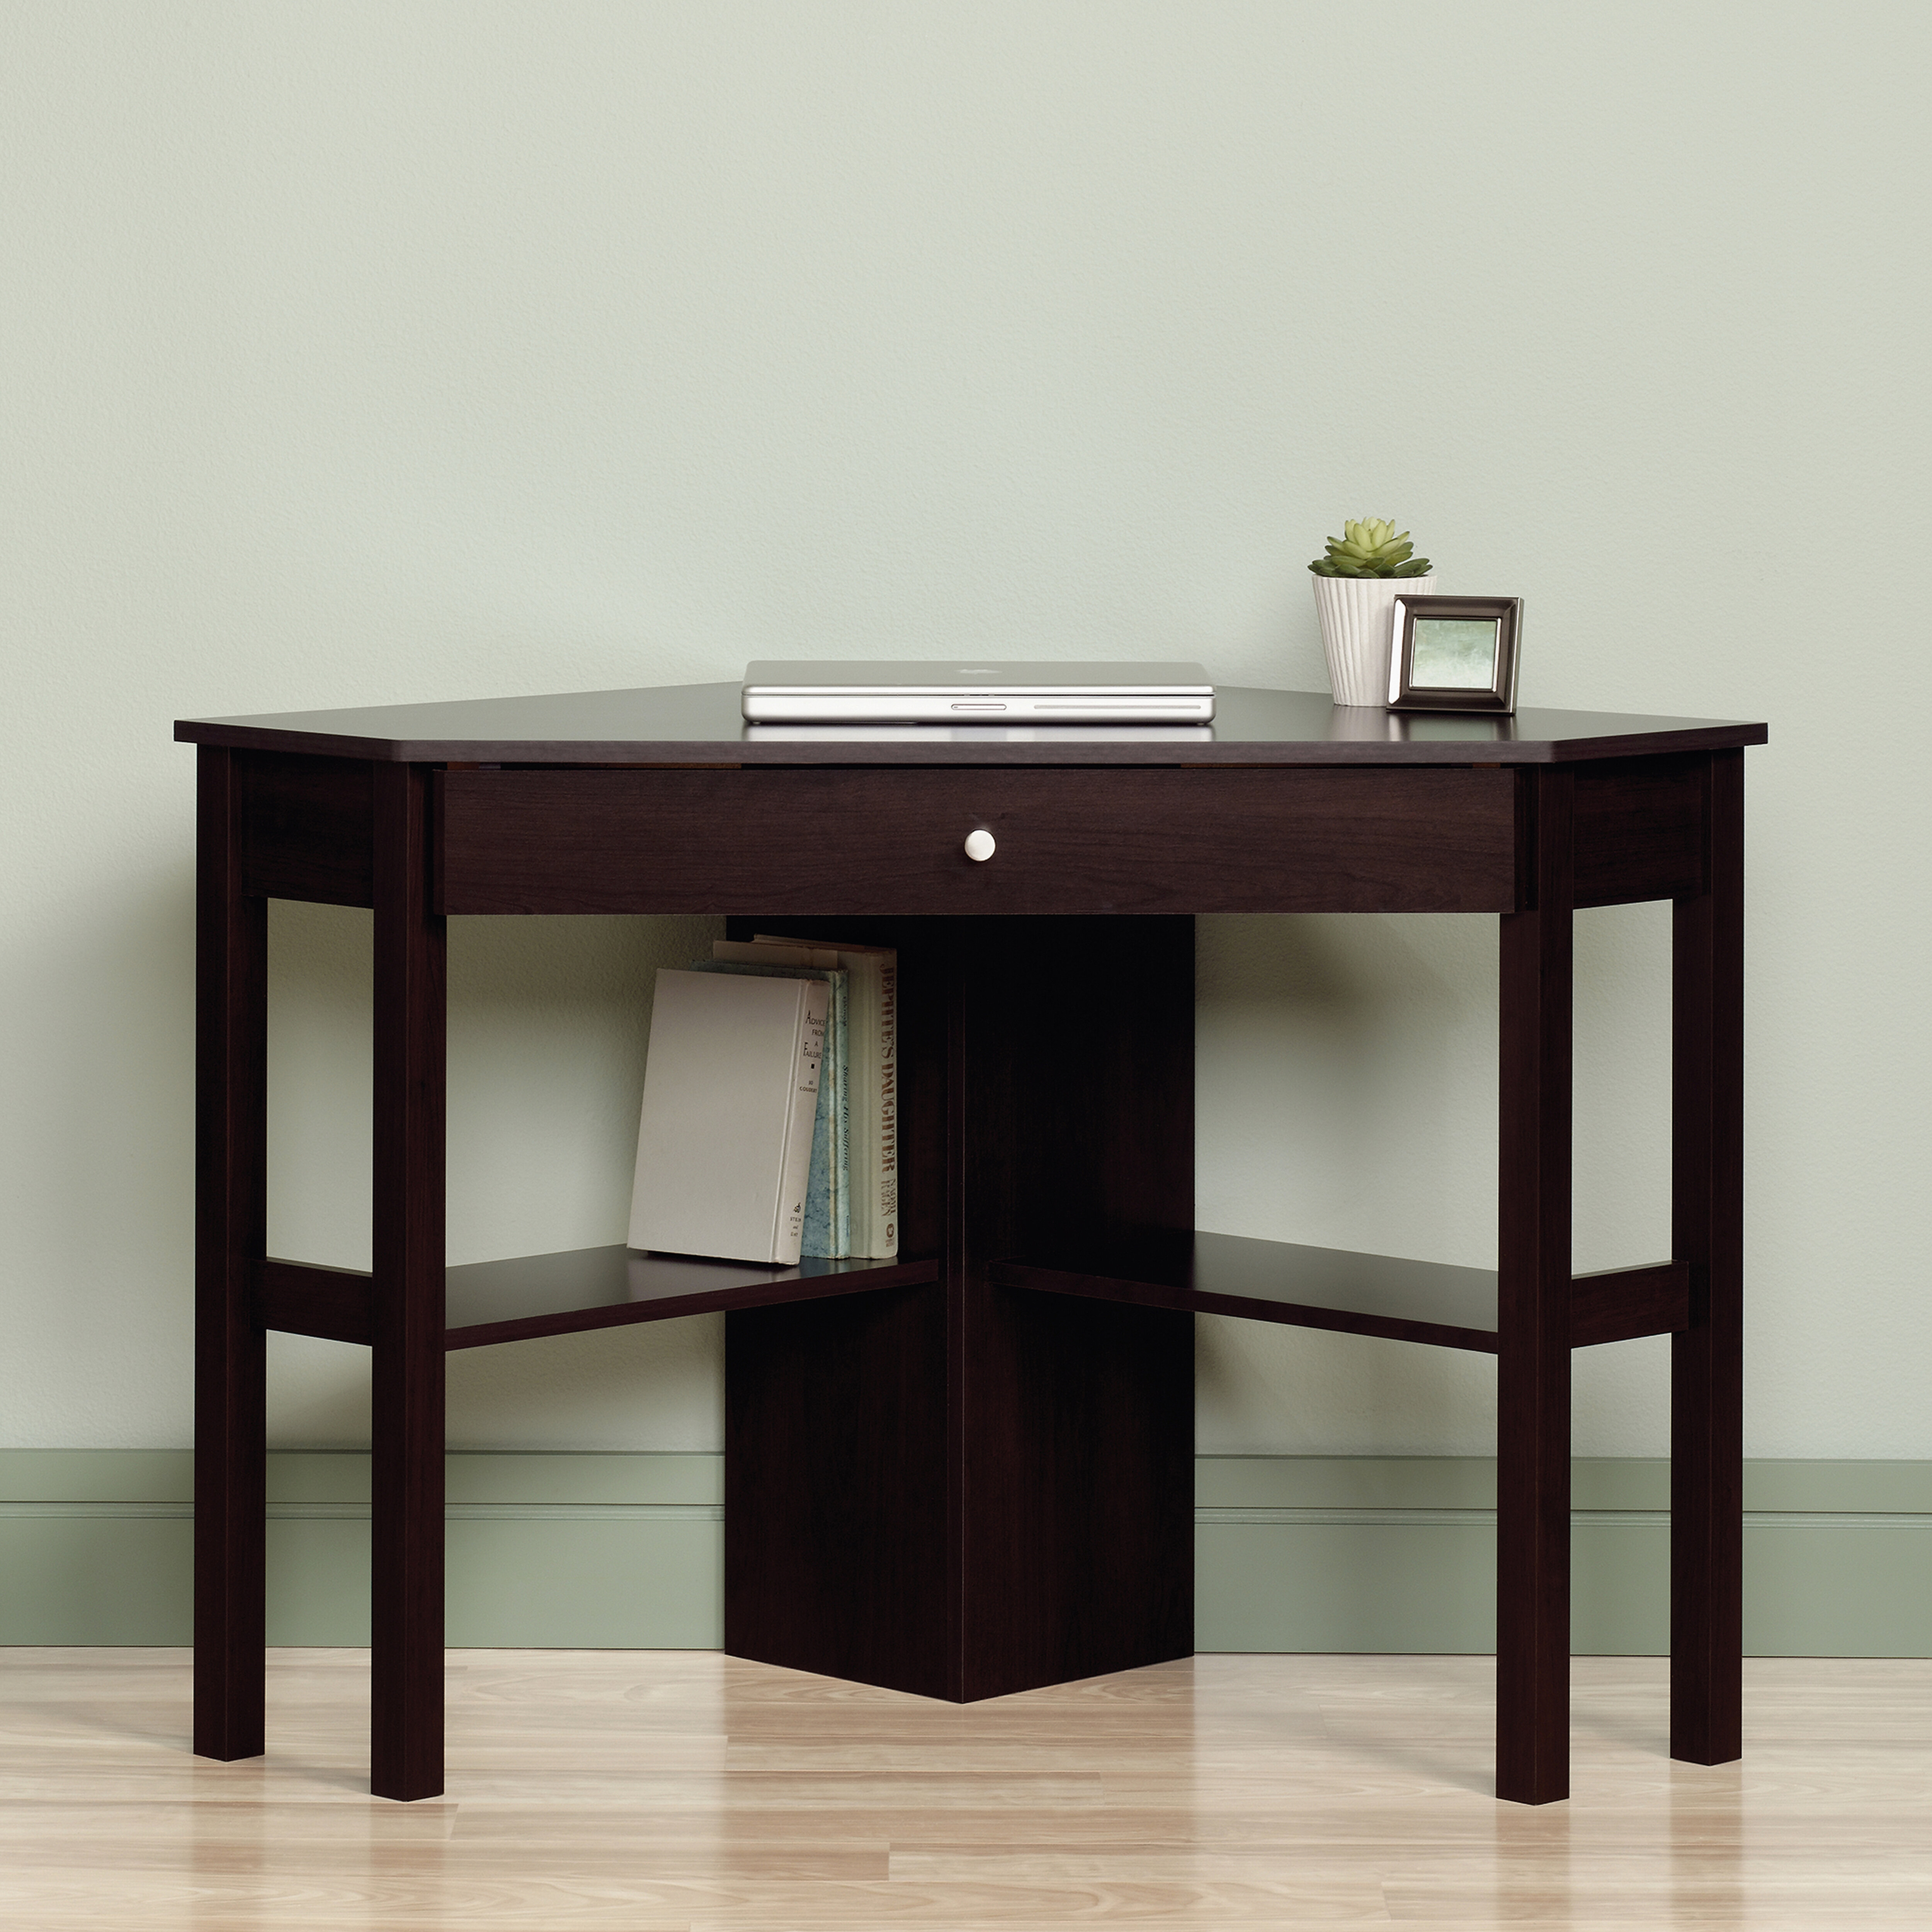 emily desk couples writing wayfair desks office roundup henderson chairs and home blog power